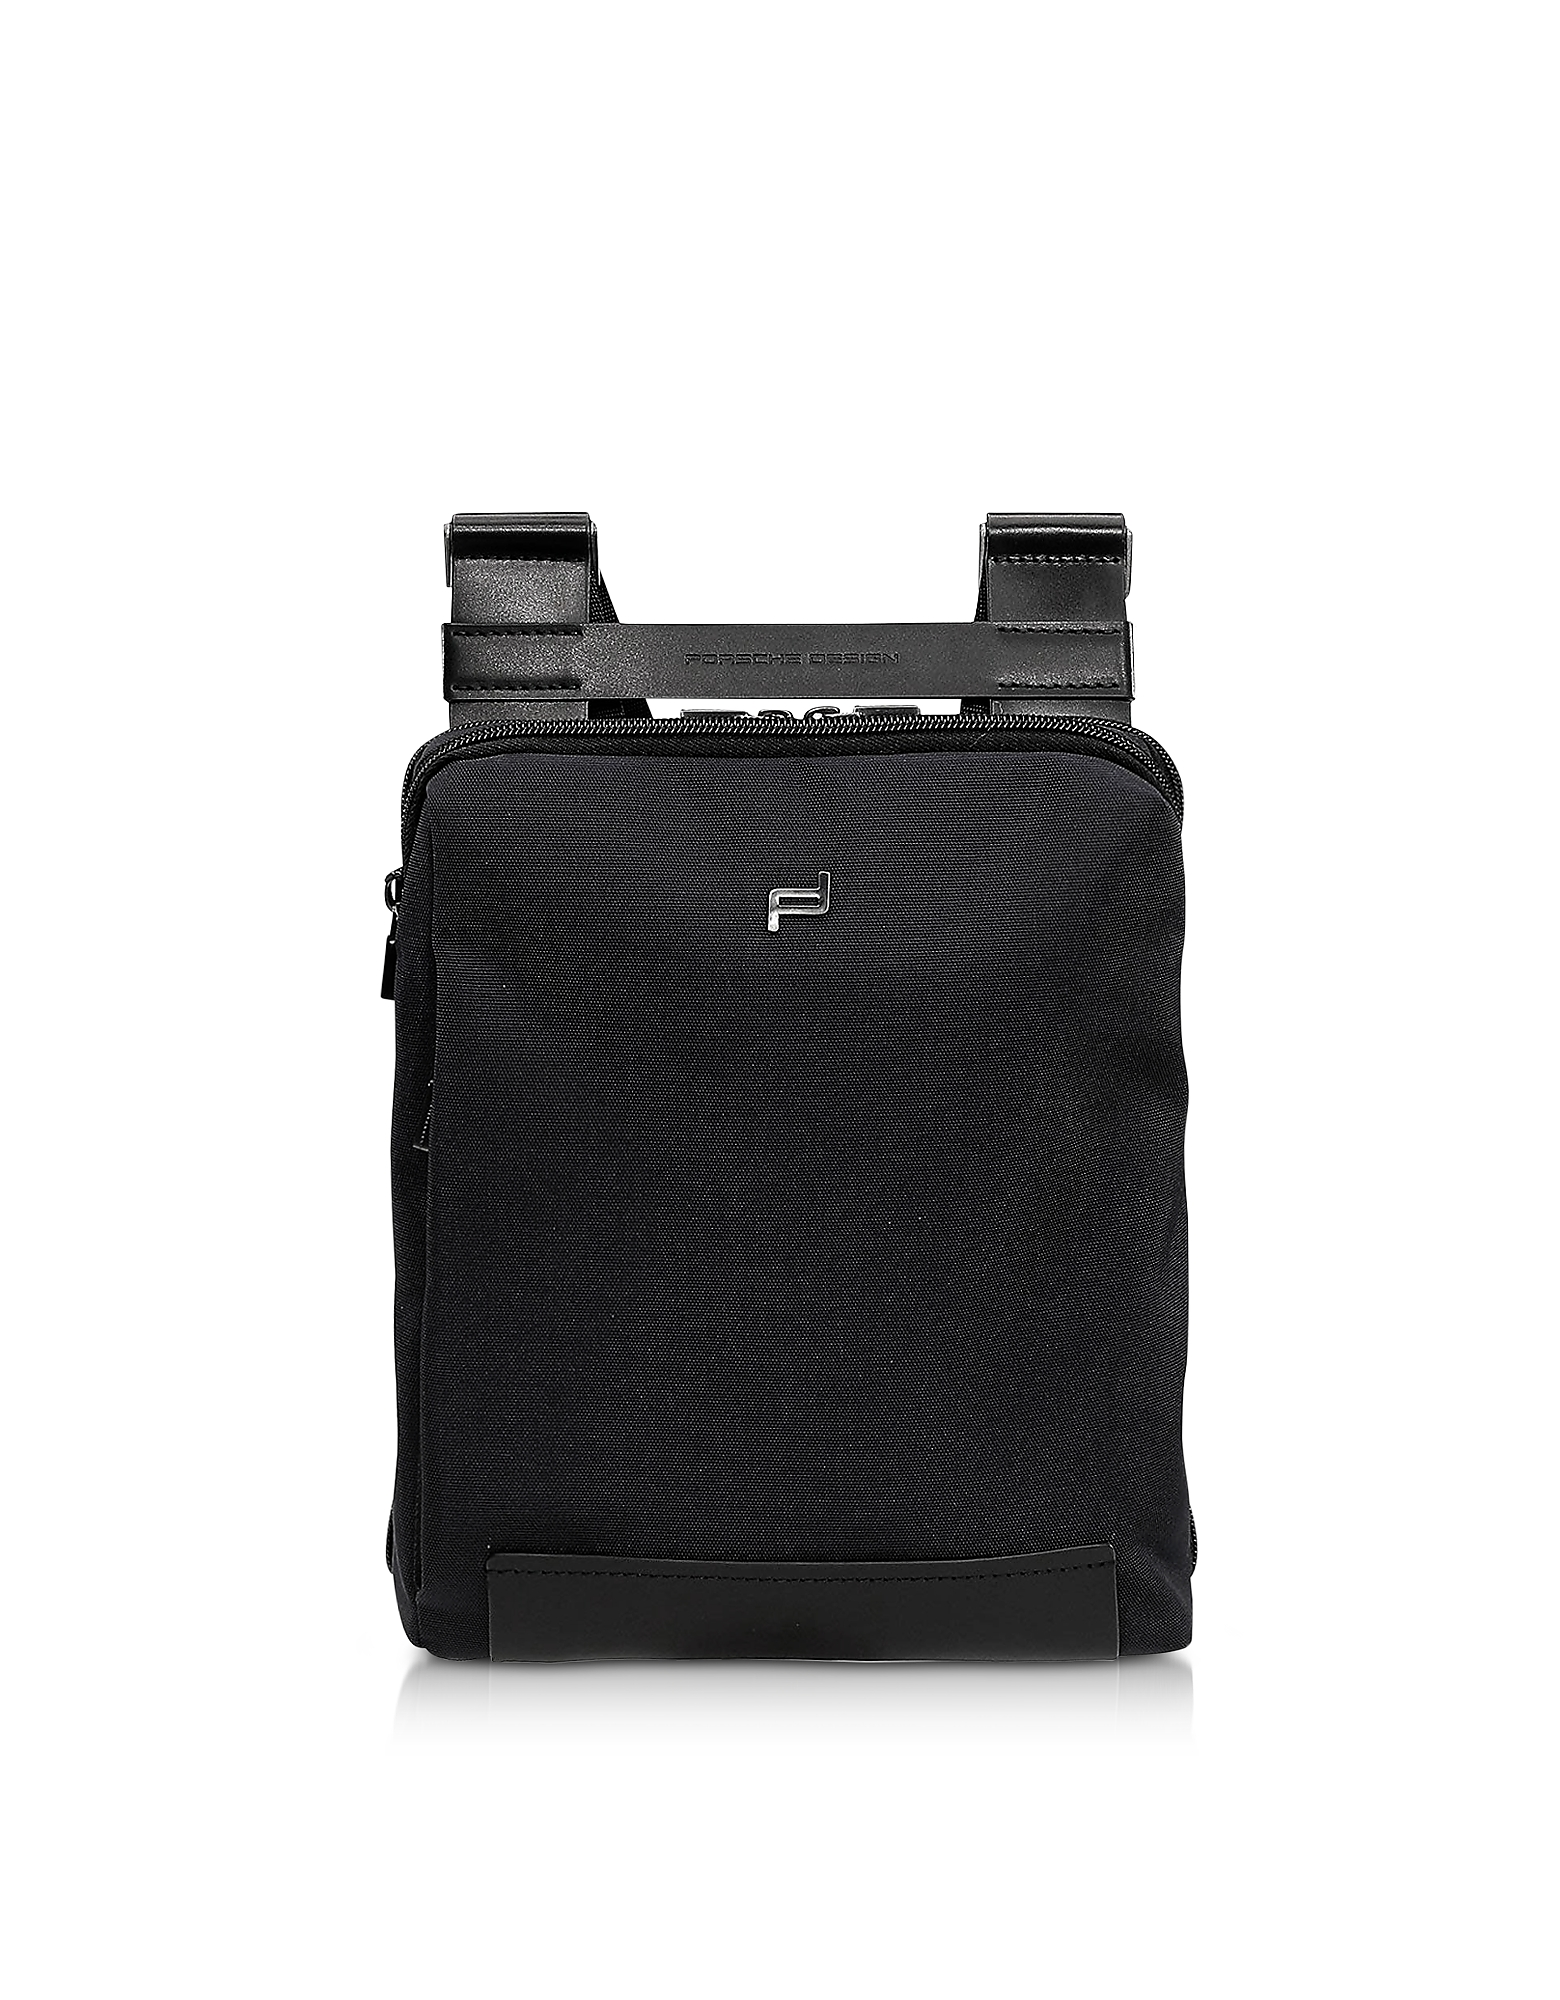 Shyrt 2.0 Nylon SVZ Shoulder Bag, Black